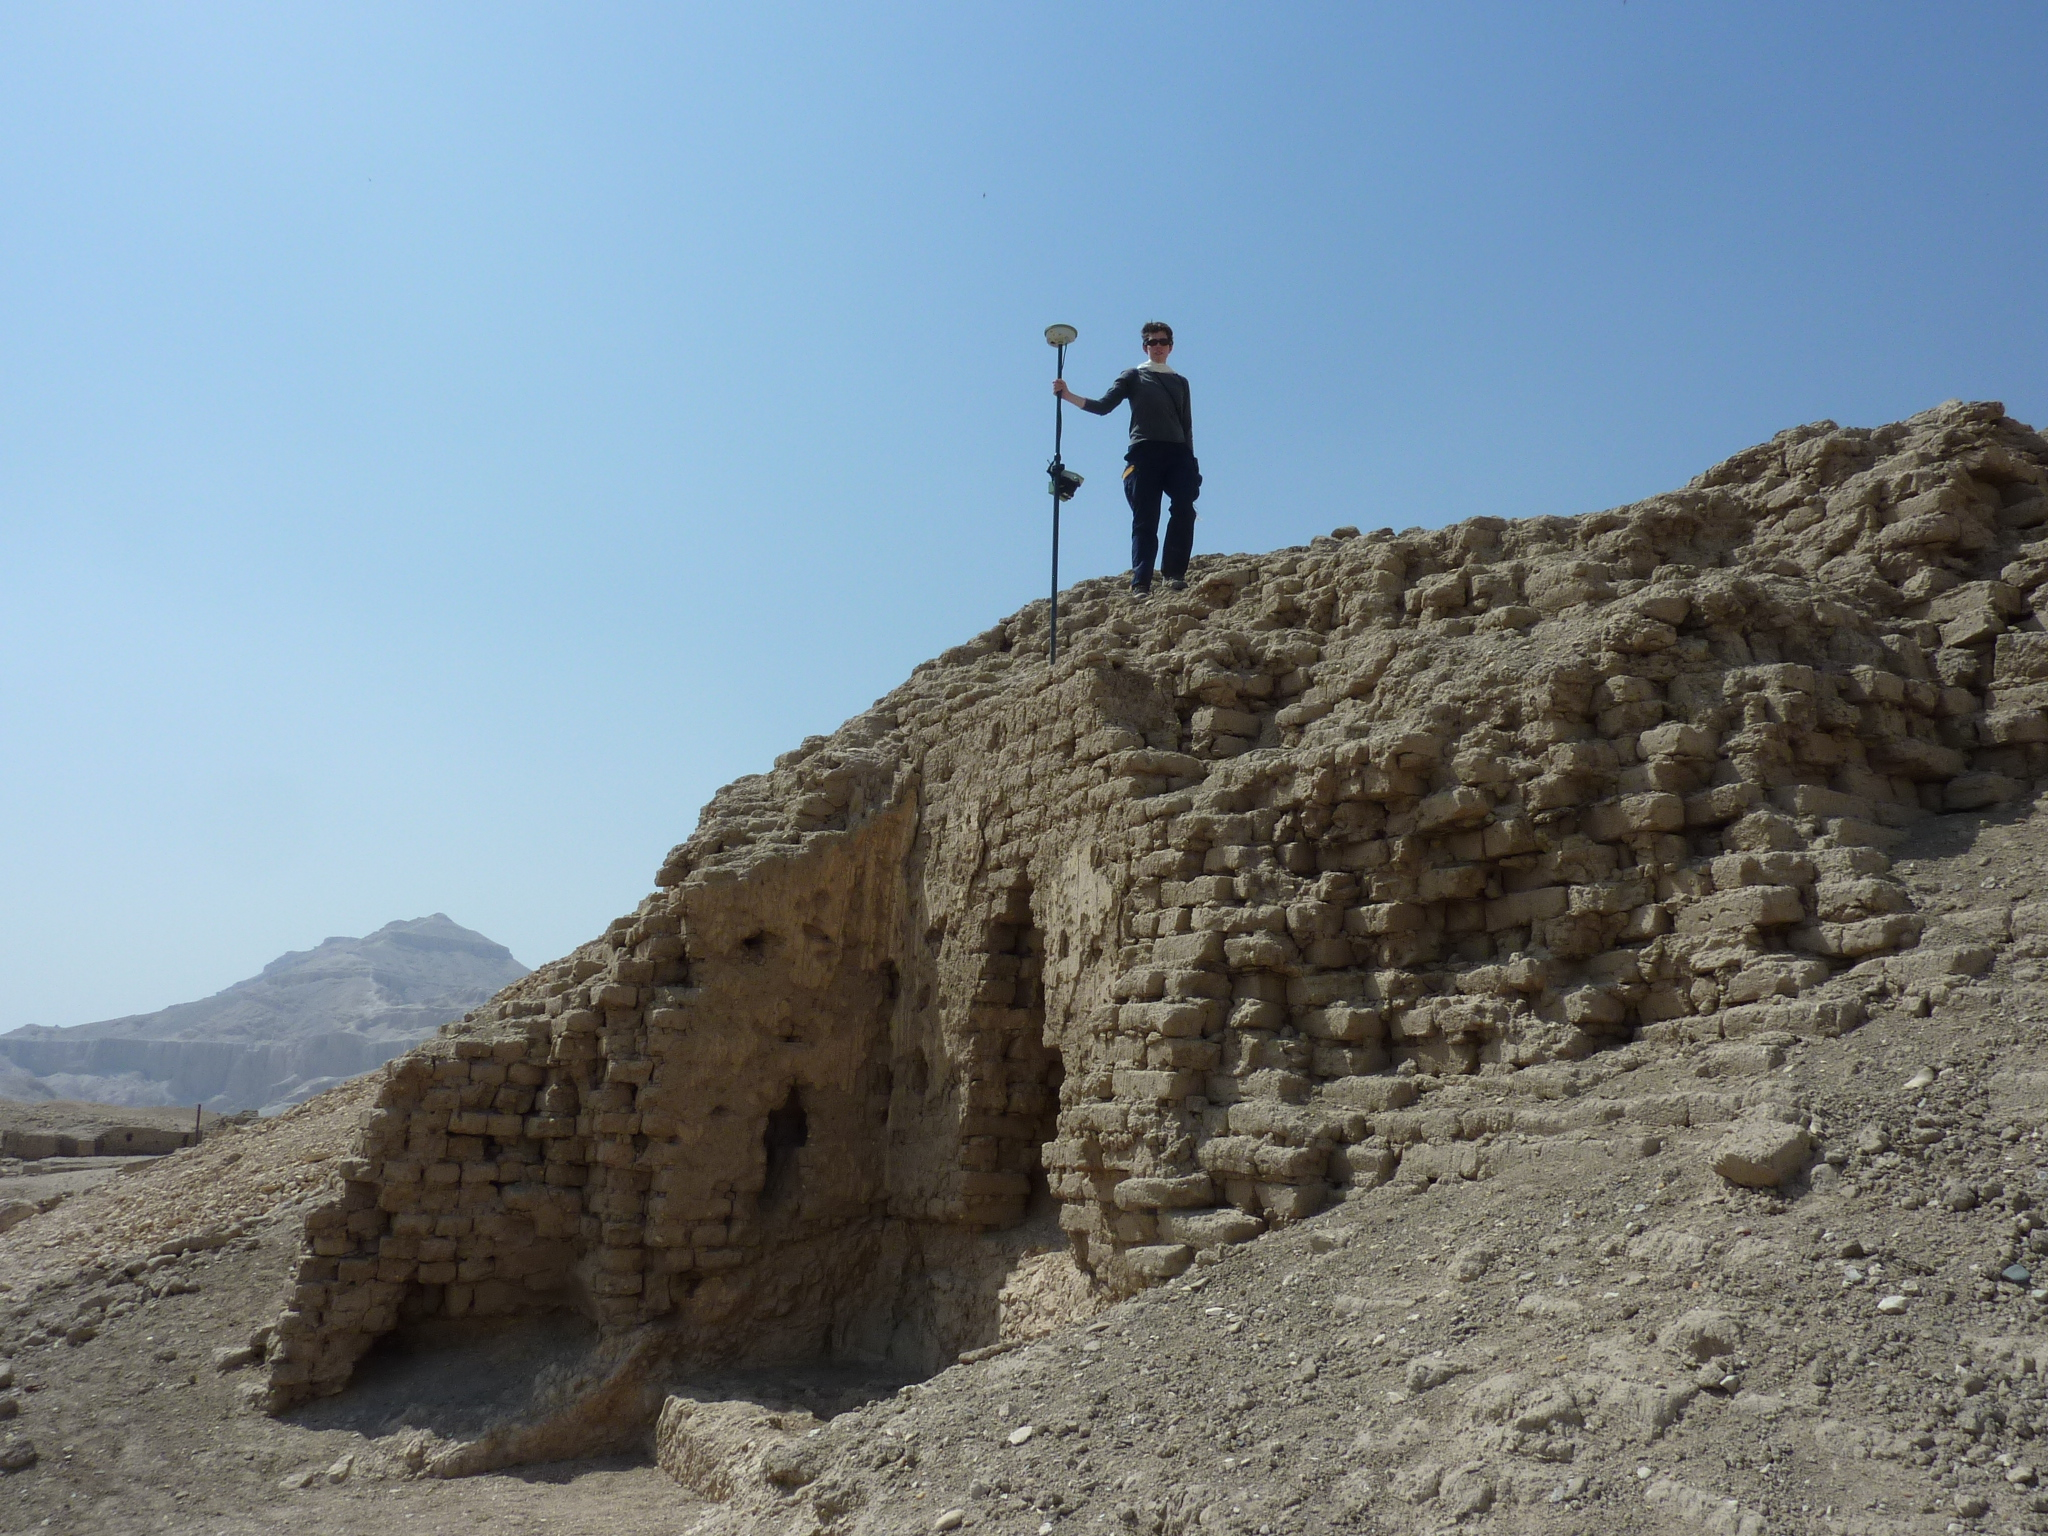 Author standing on a mudbrick pyramid with a differential GPS de